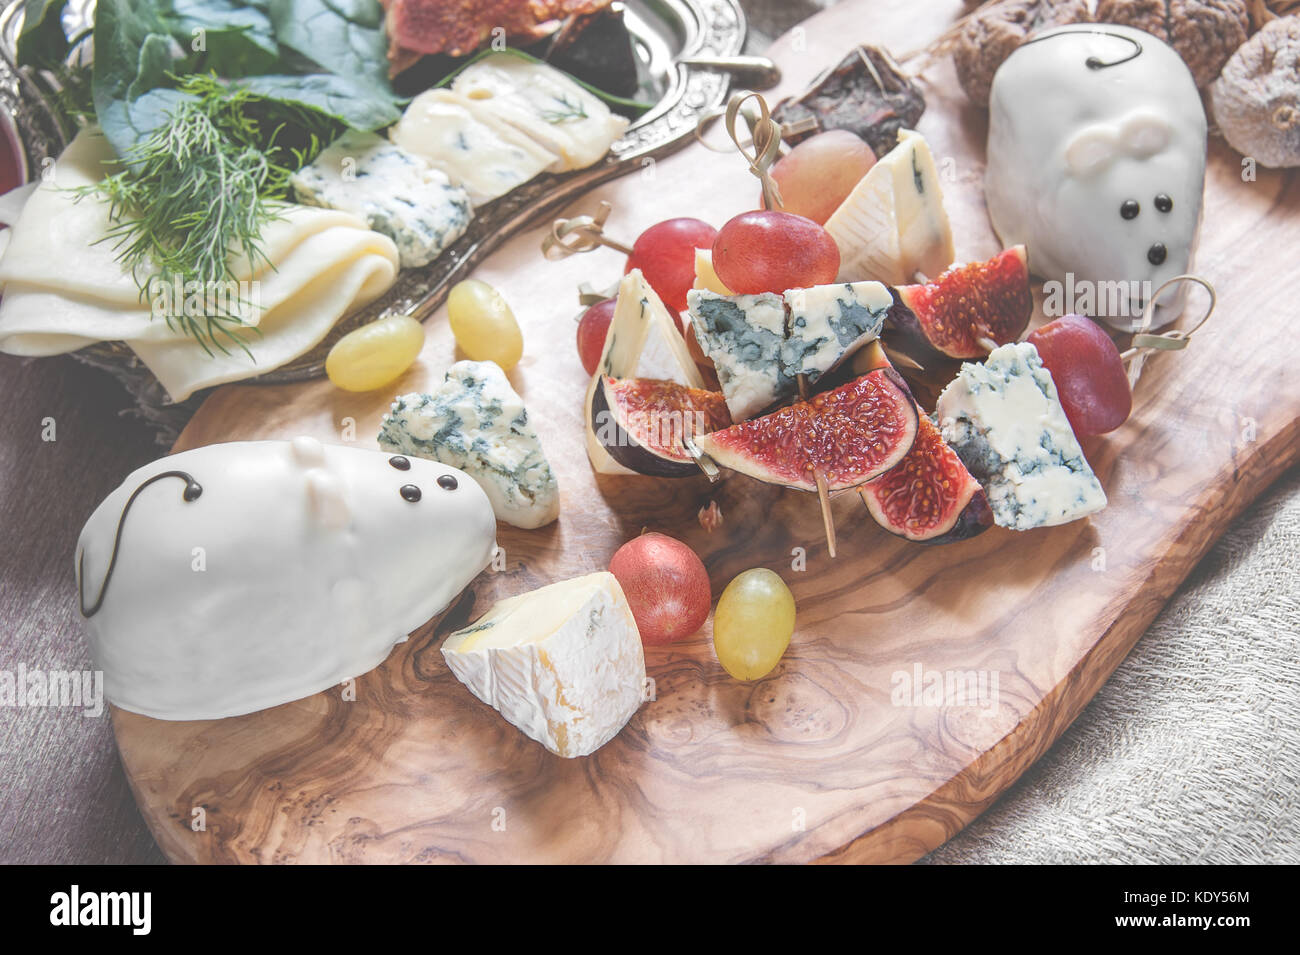 Italian Focaccia bread with cheese and a cheese plate with figs and Gorgonzola brie DorBlu and grapes. The horizontal frame. & Italian Focaccia bread with cheese and a cheese plate with figs and ...